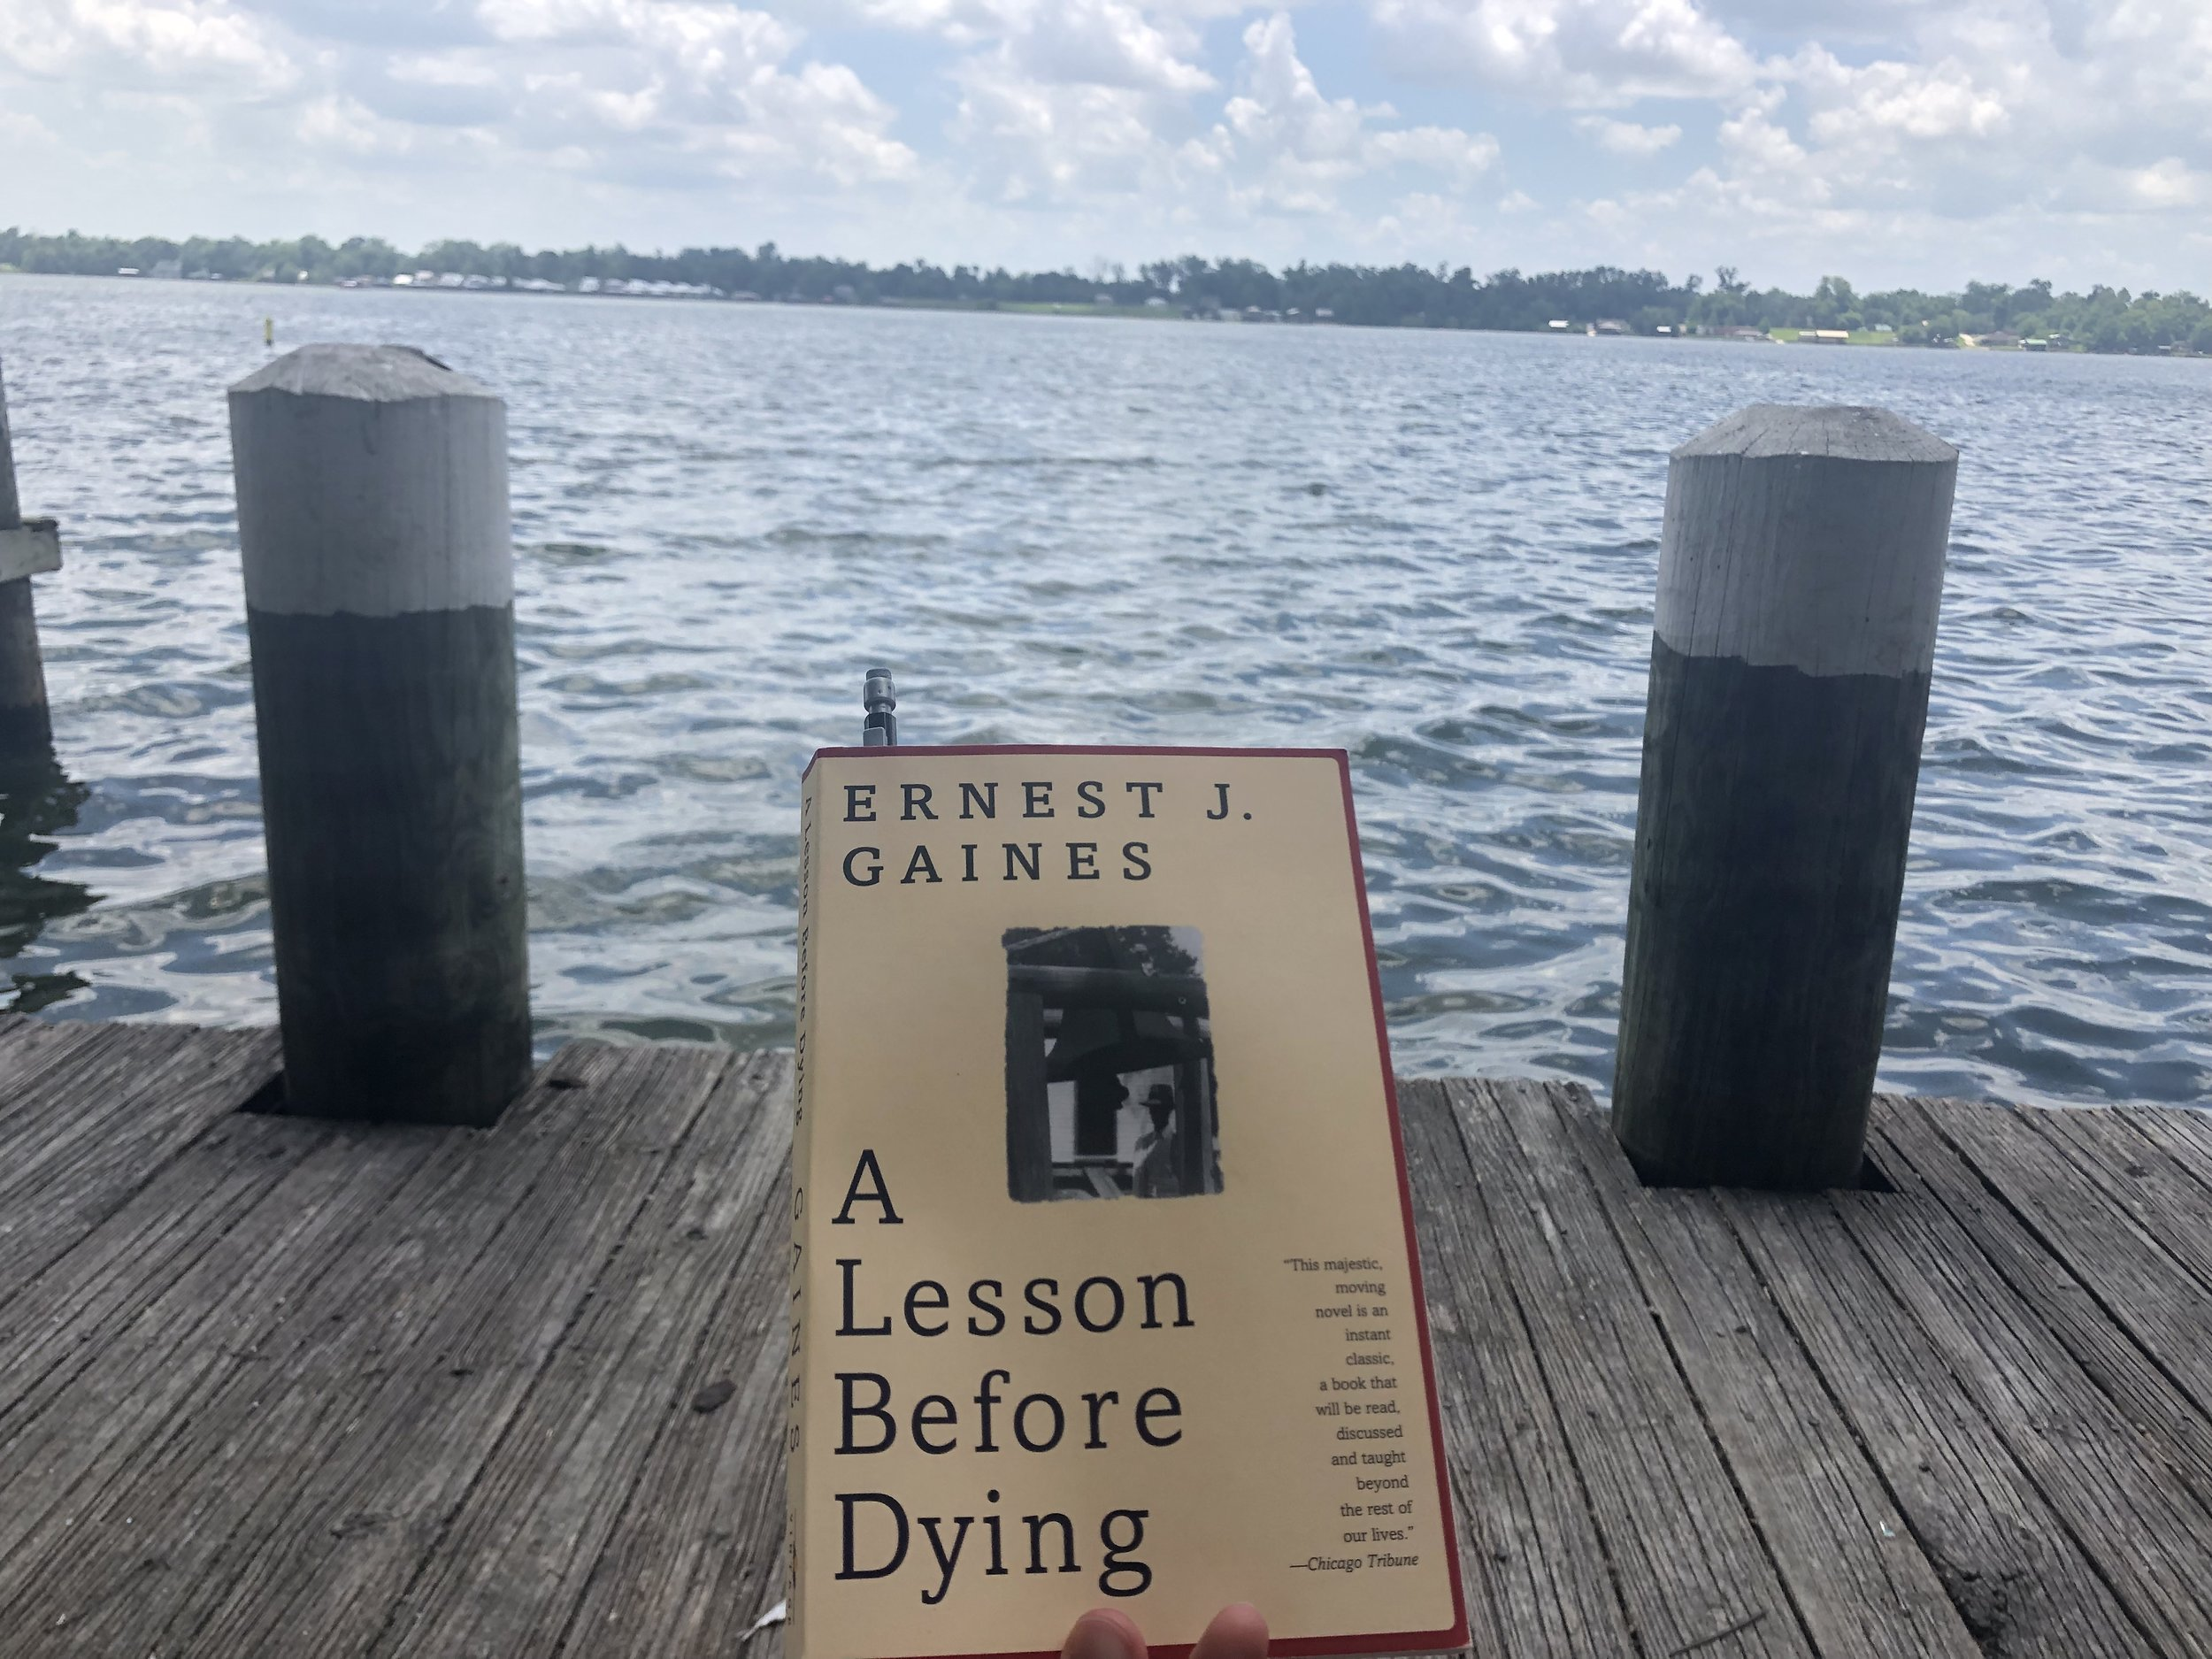 Reading A Lesson Before Dying while sitting by the same river that author Ernest J. Gaines lives near.